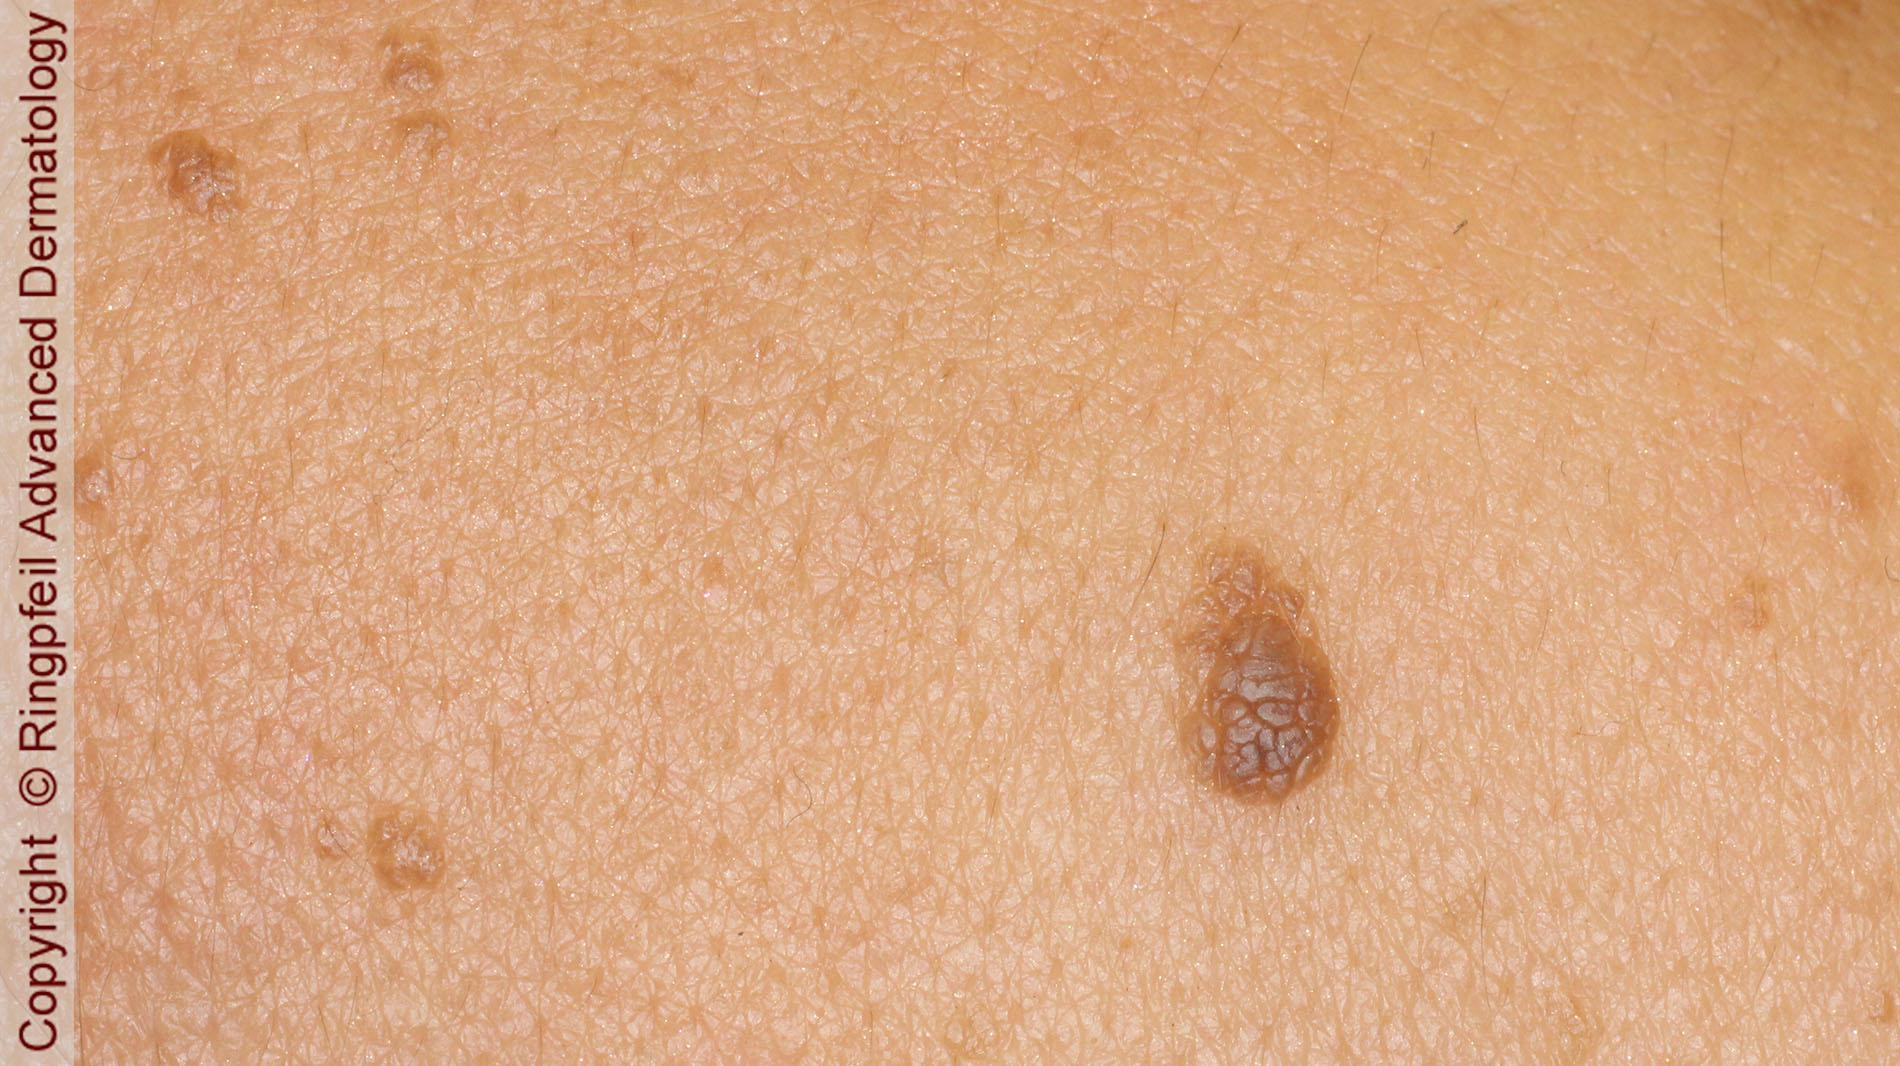 removal of atypical moles